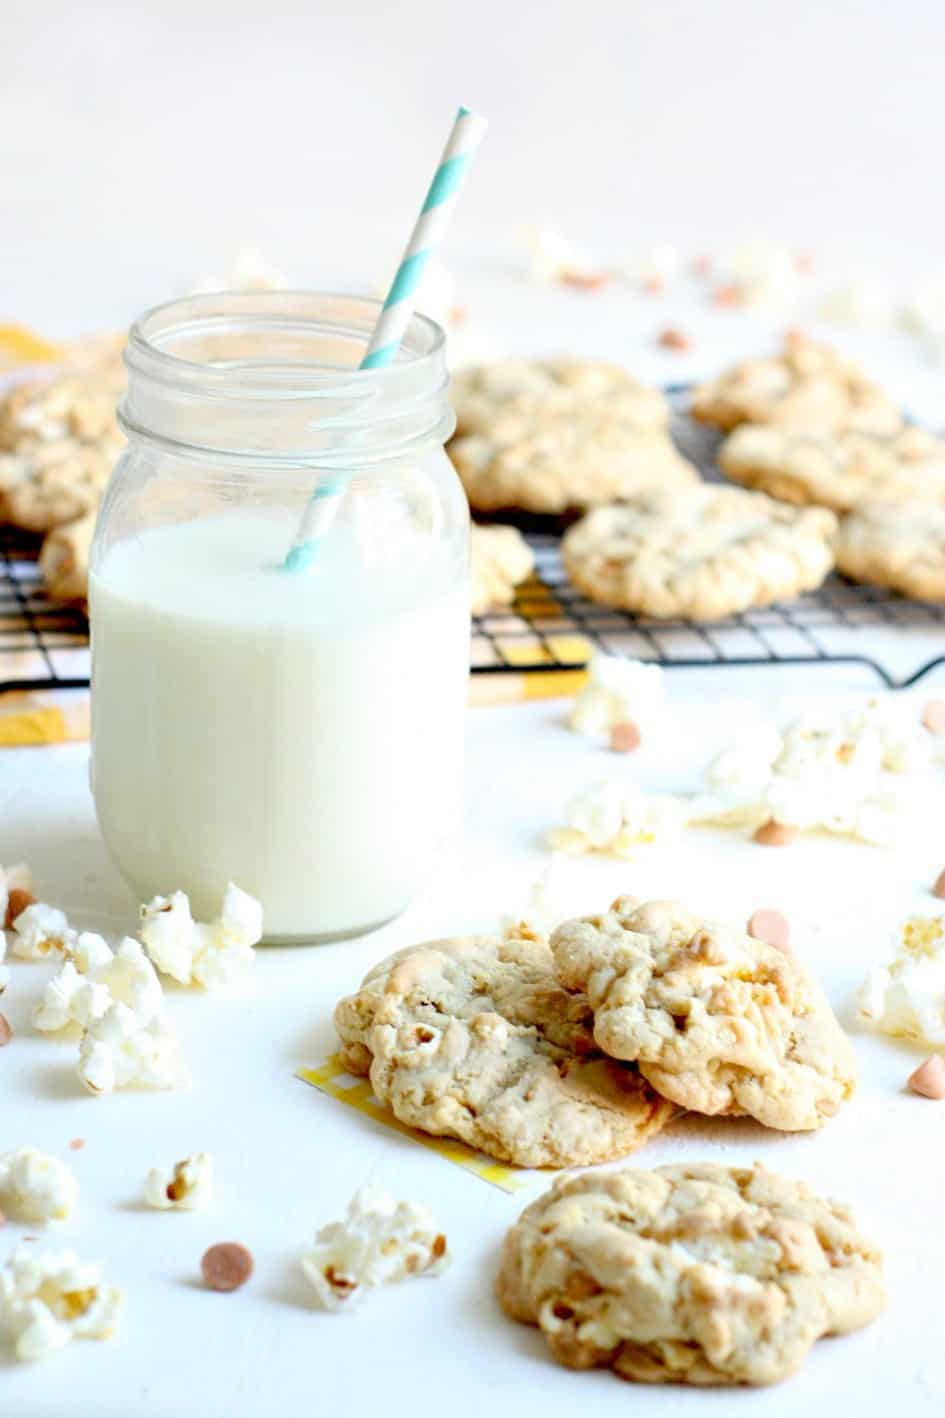 You'll feel like you've gone straight to the movie theater with these delicious buttered popcorn and butterscotch cookies. Sweet, salty, and SOOO good!